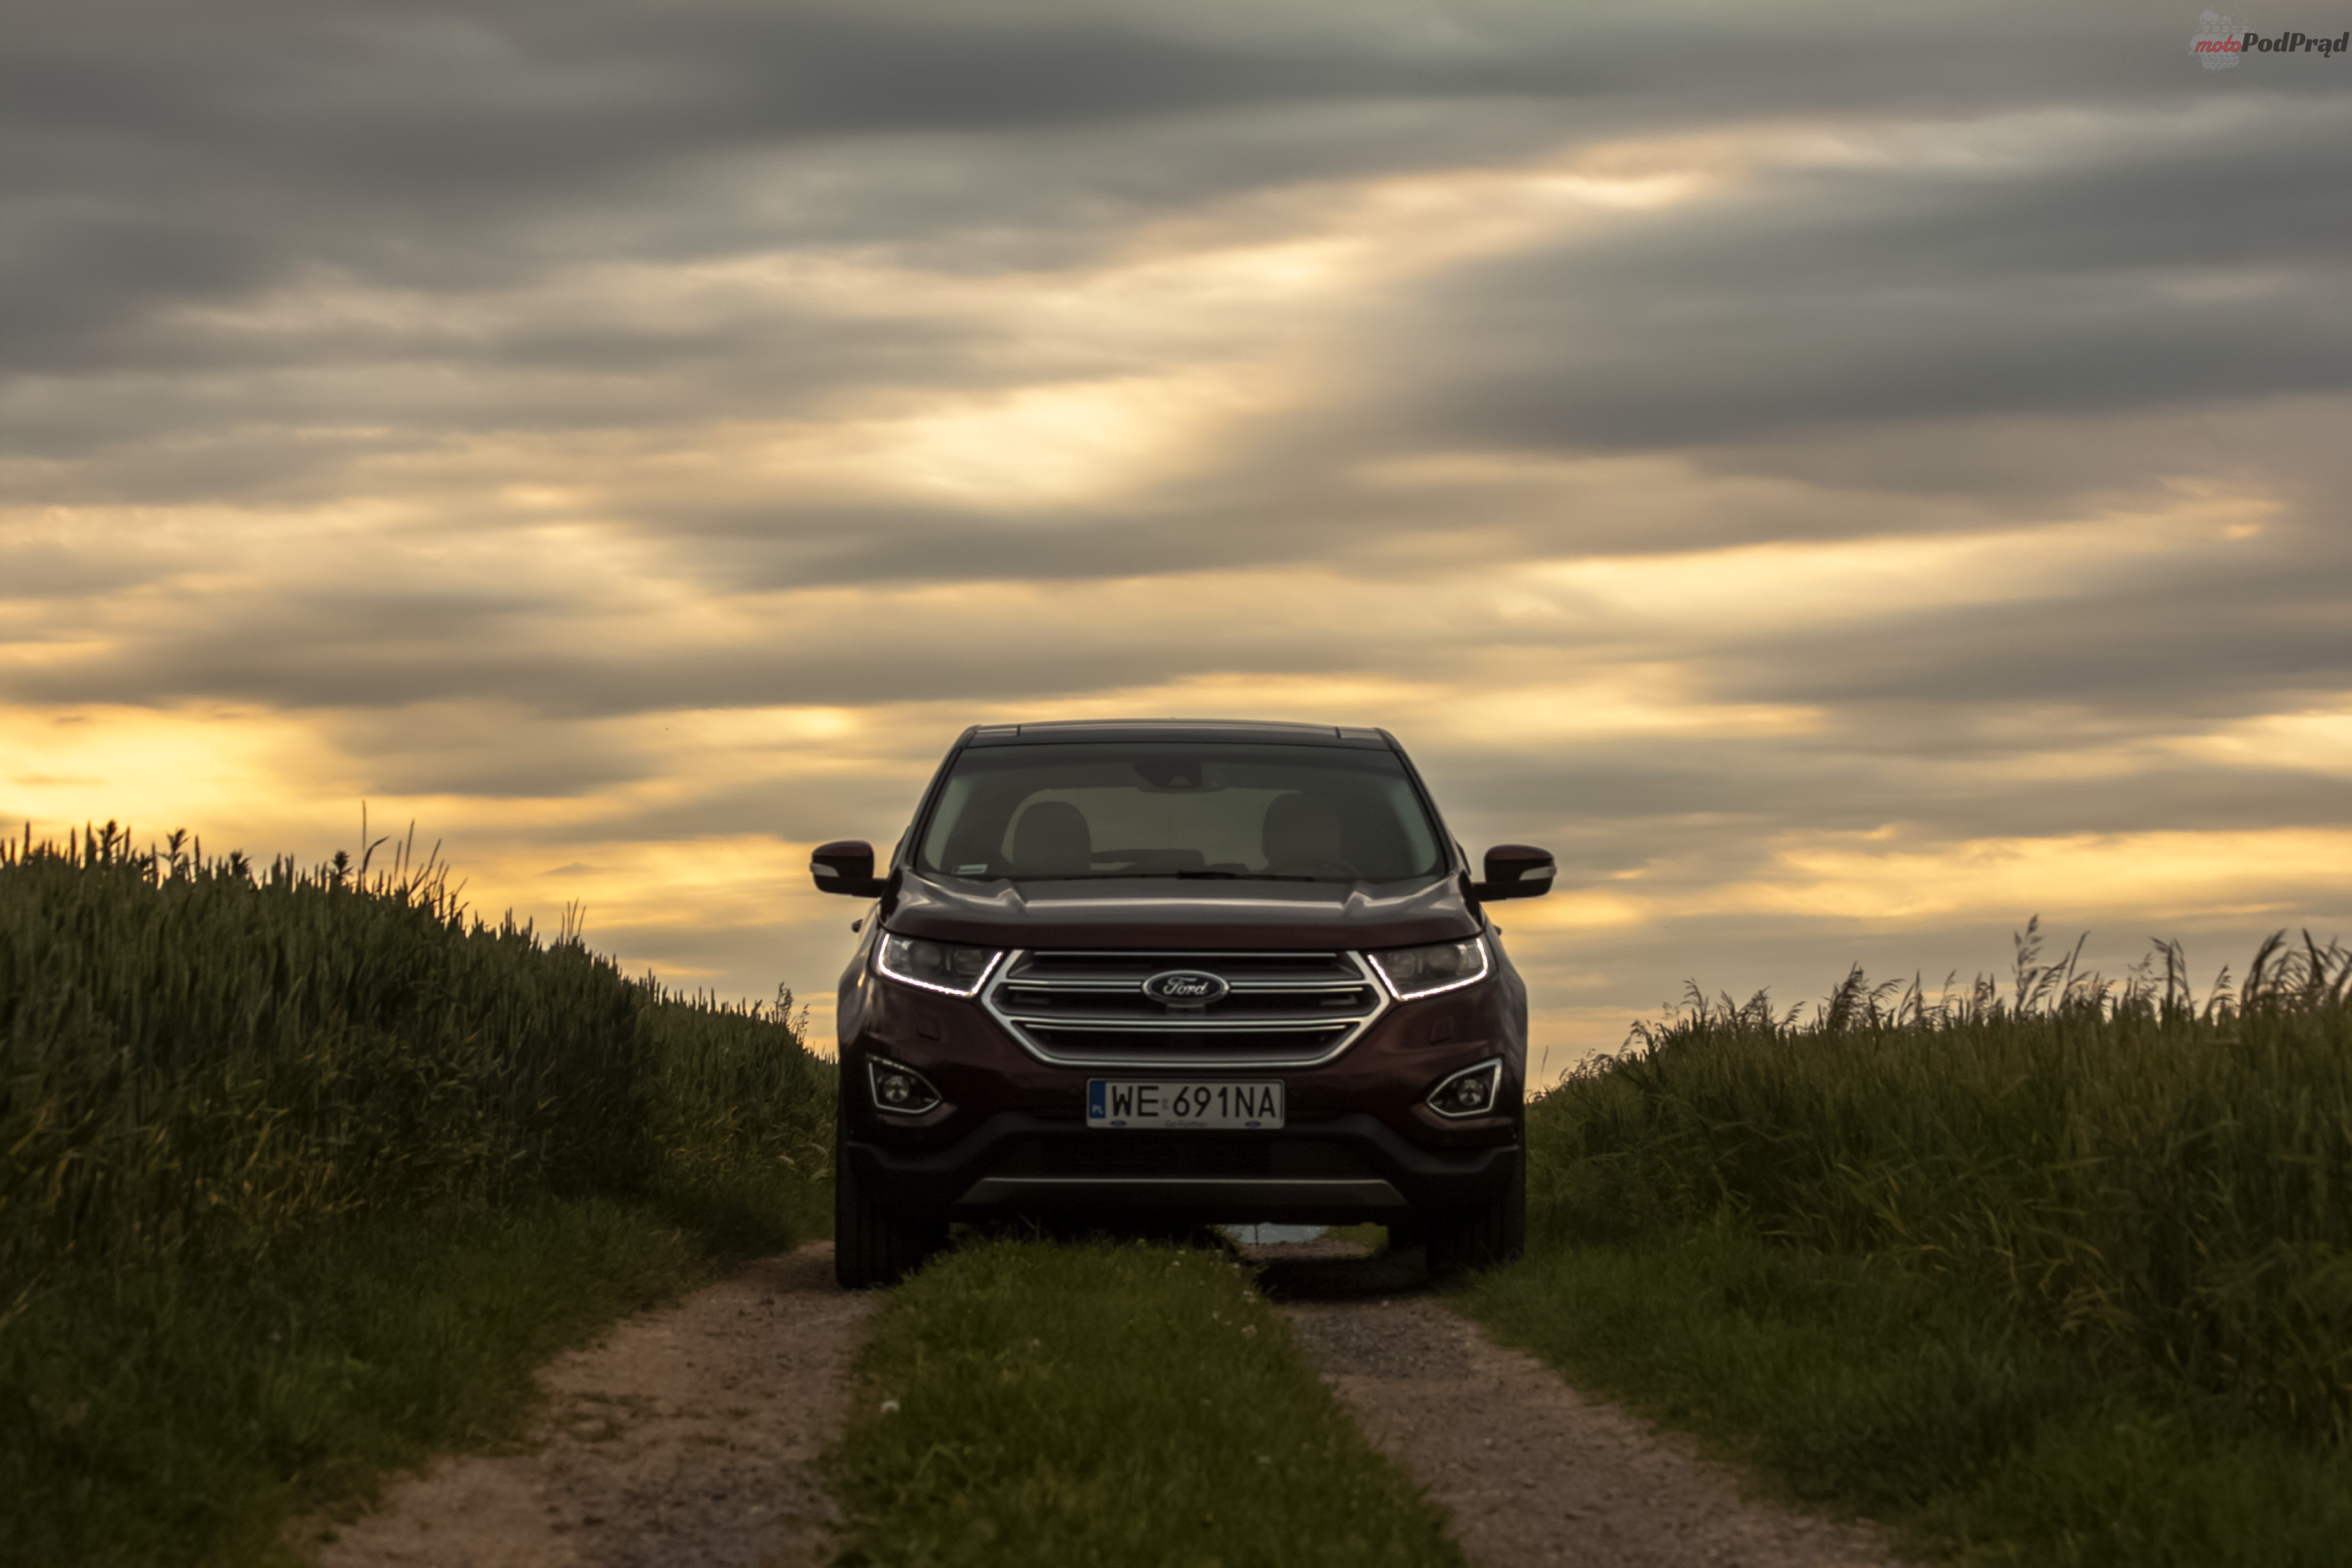 Ford Edge 8 Test: Ford Edge 2.0 TDCi   jazda na krawędzi